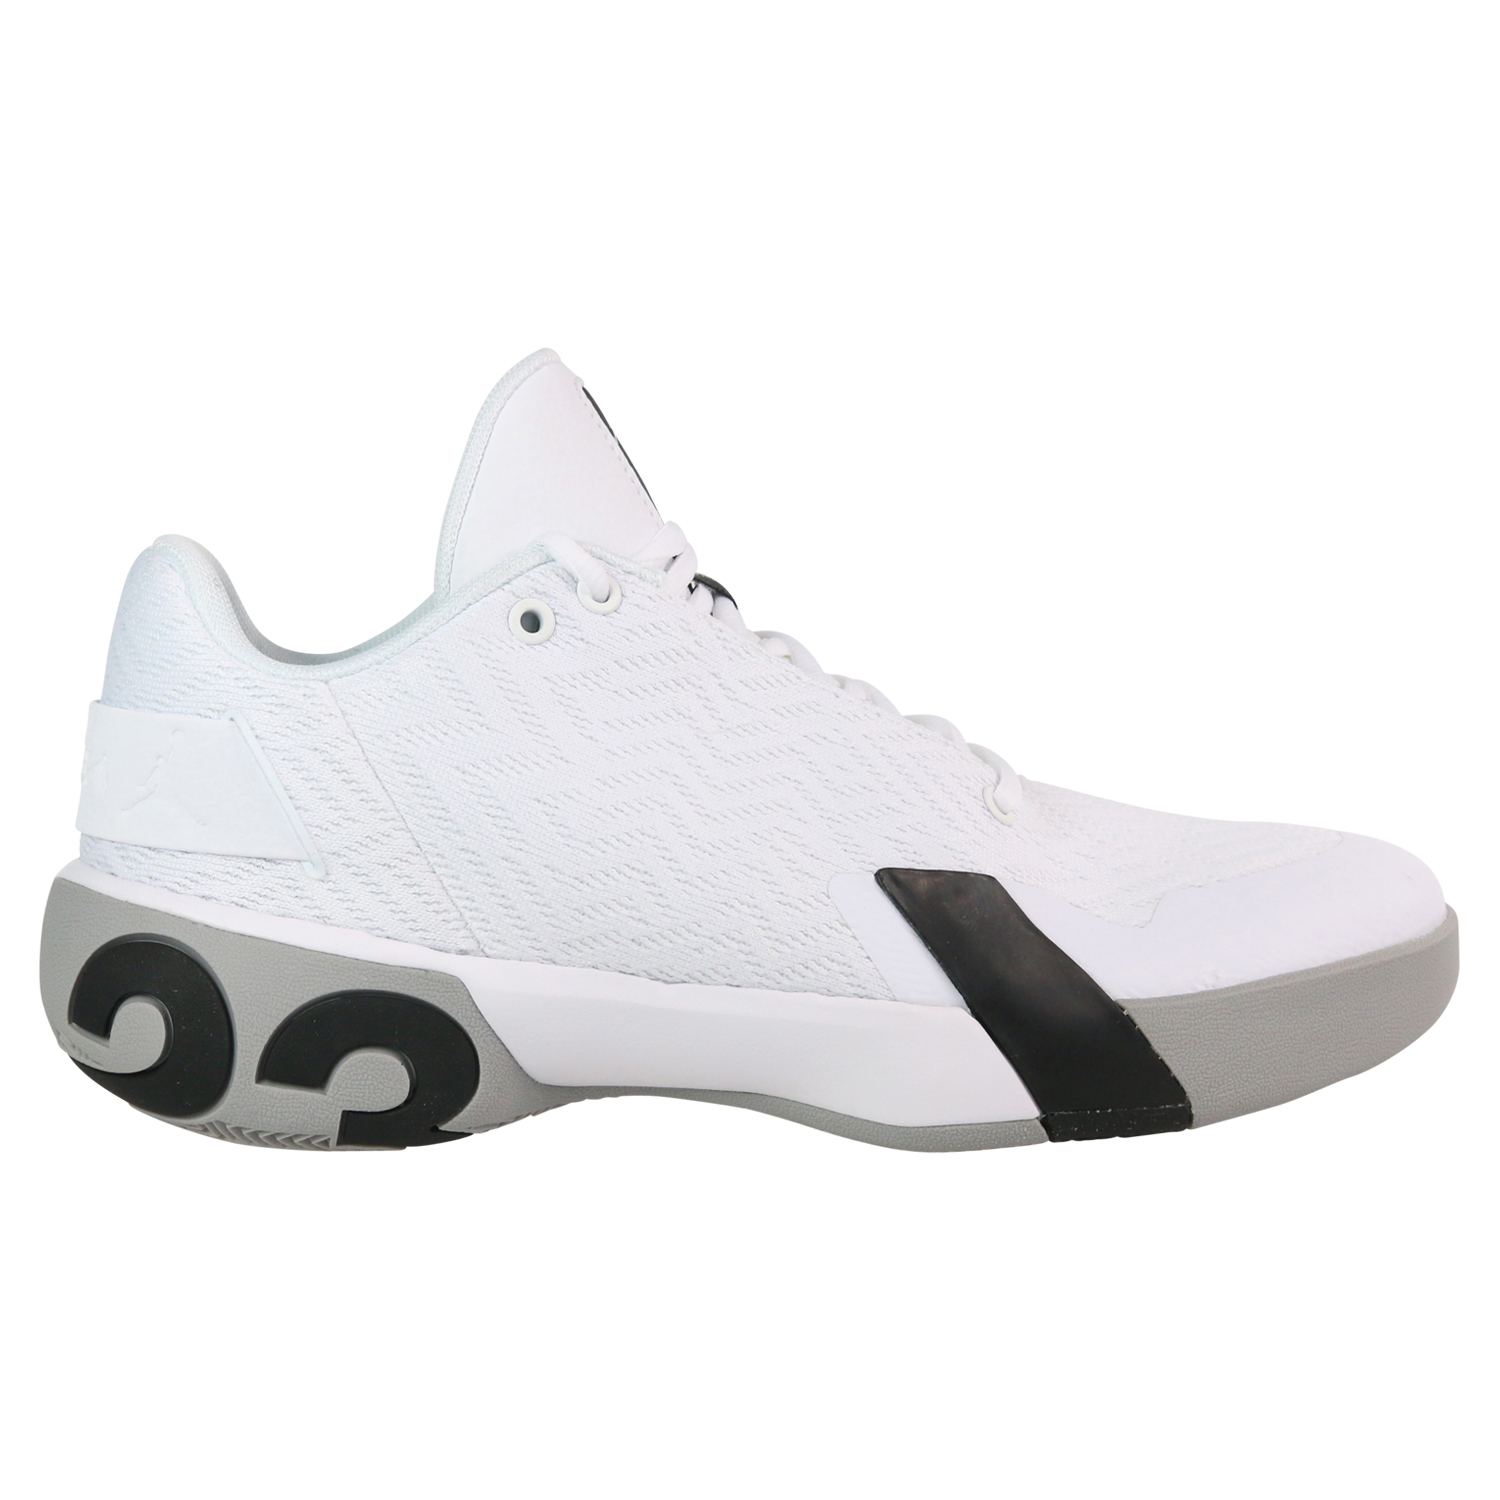 new style b8a60 461c2 Nike Jordan Ultra Fly 3 Low